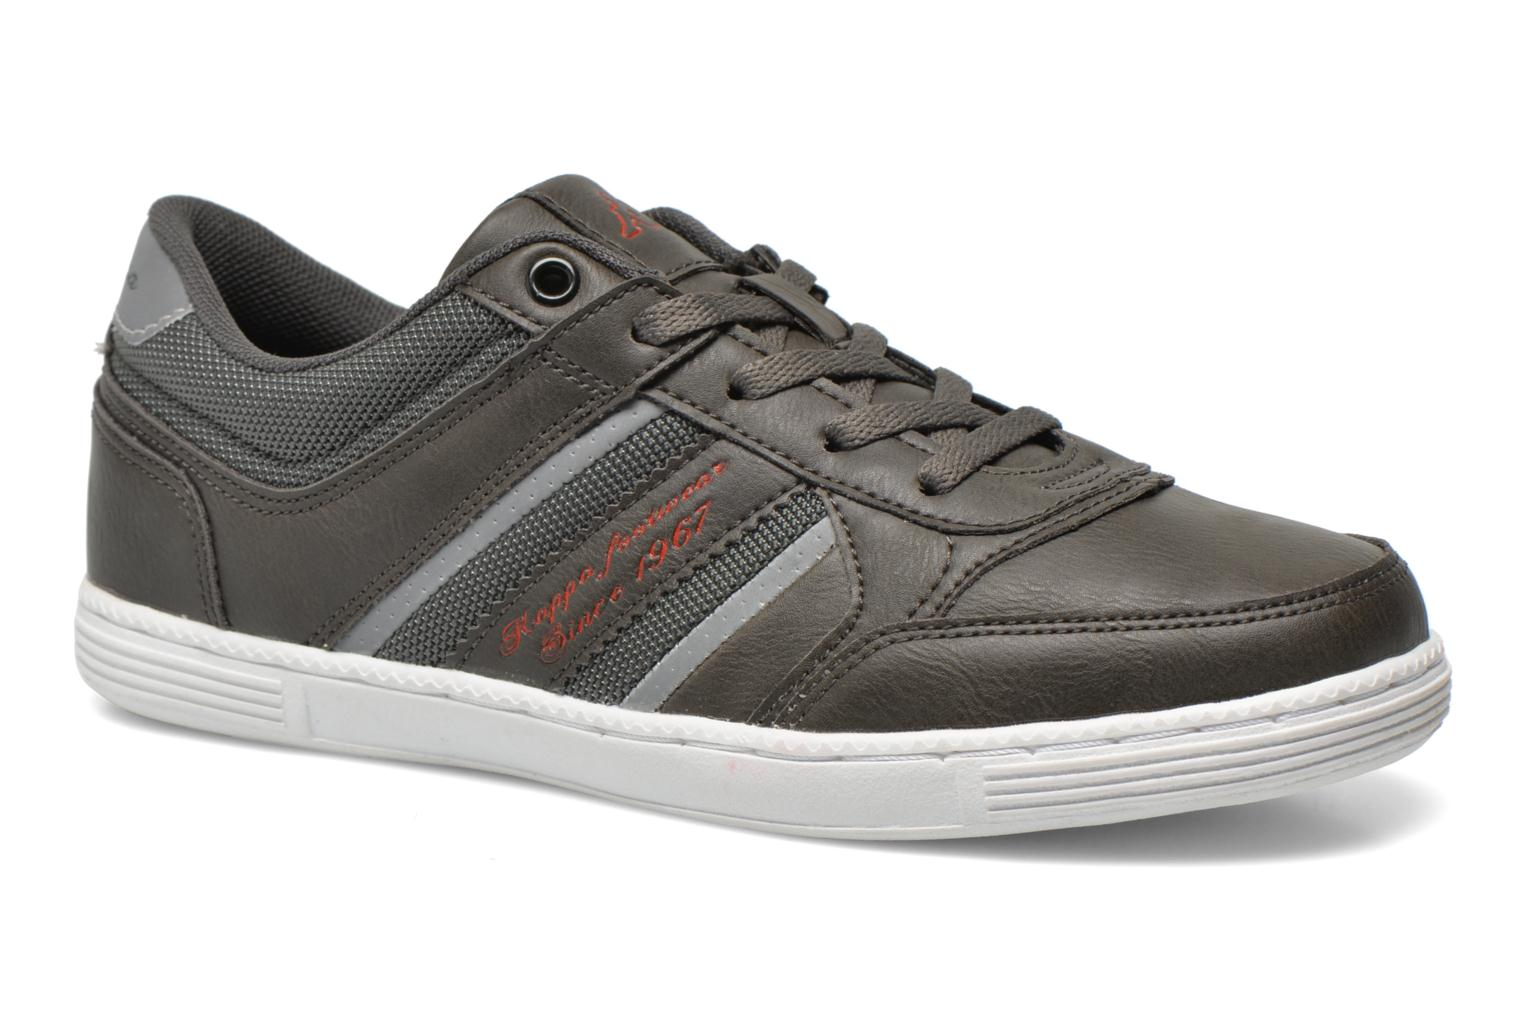 Ottawif Low Kid Dk Grey / Red